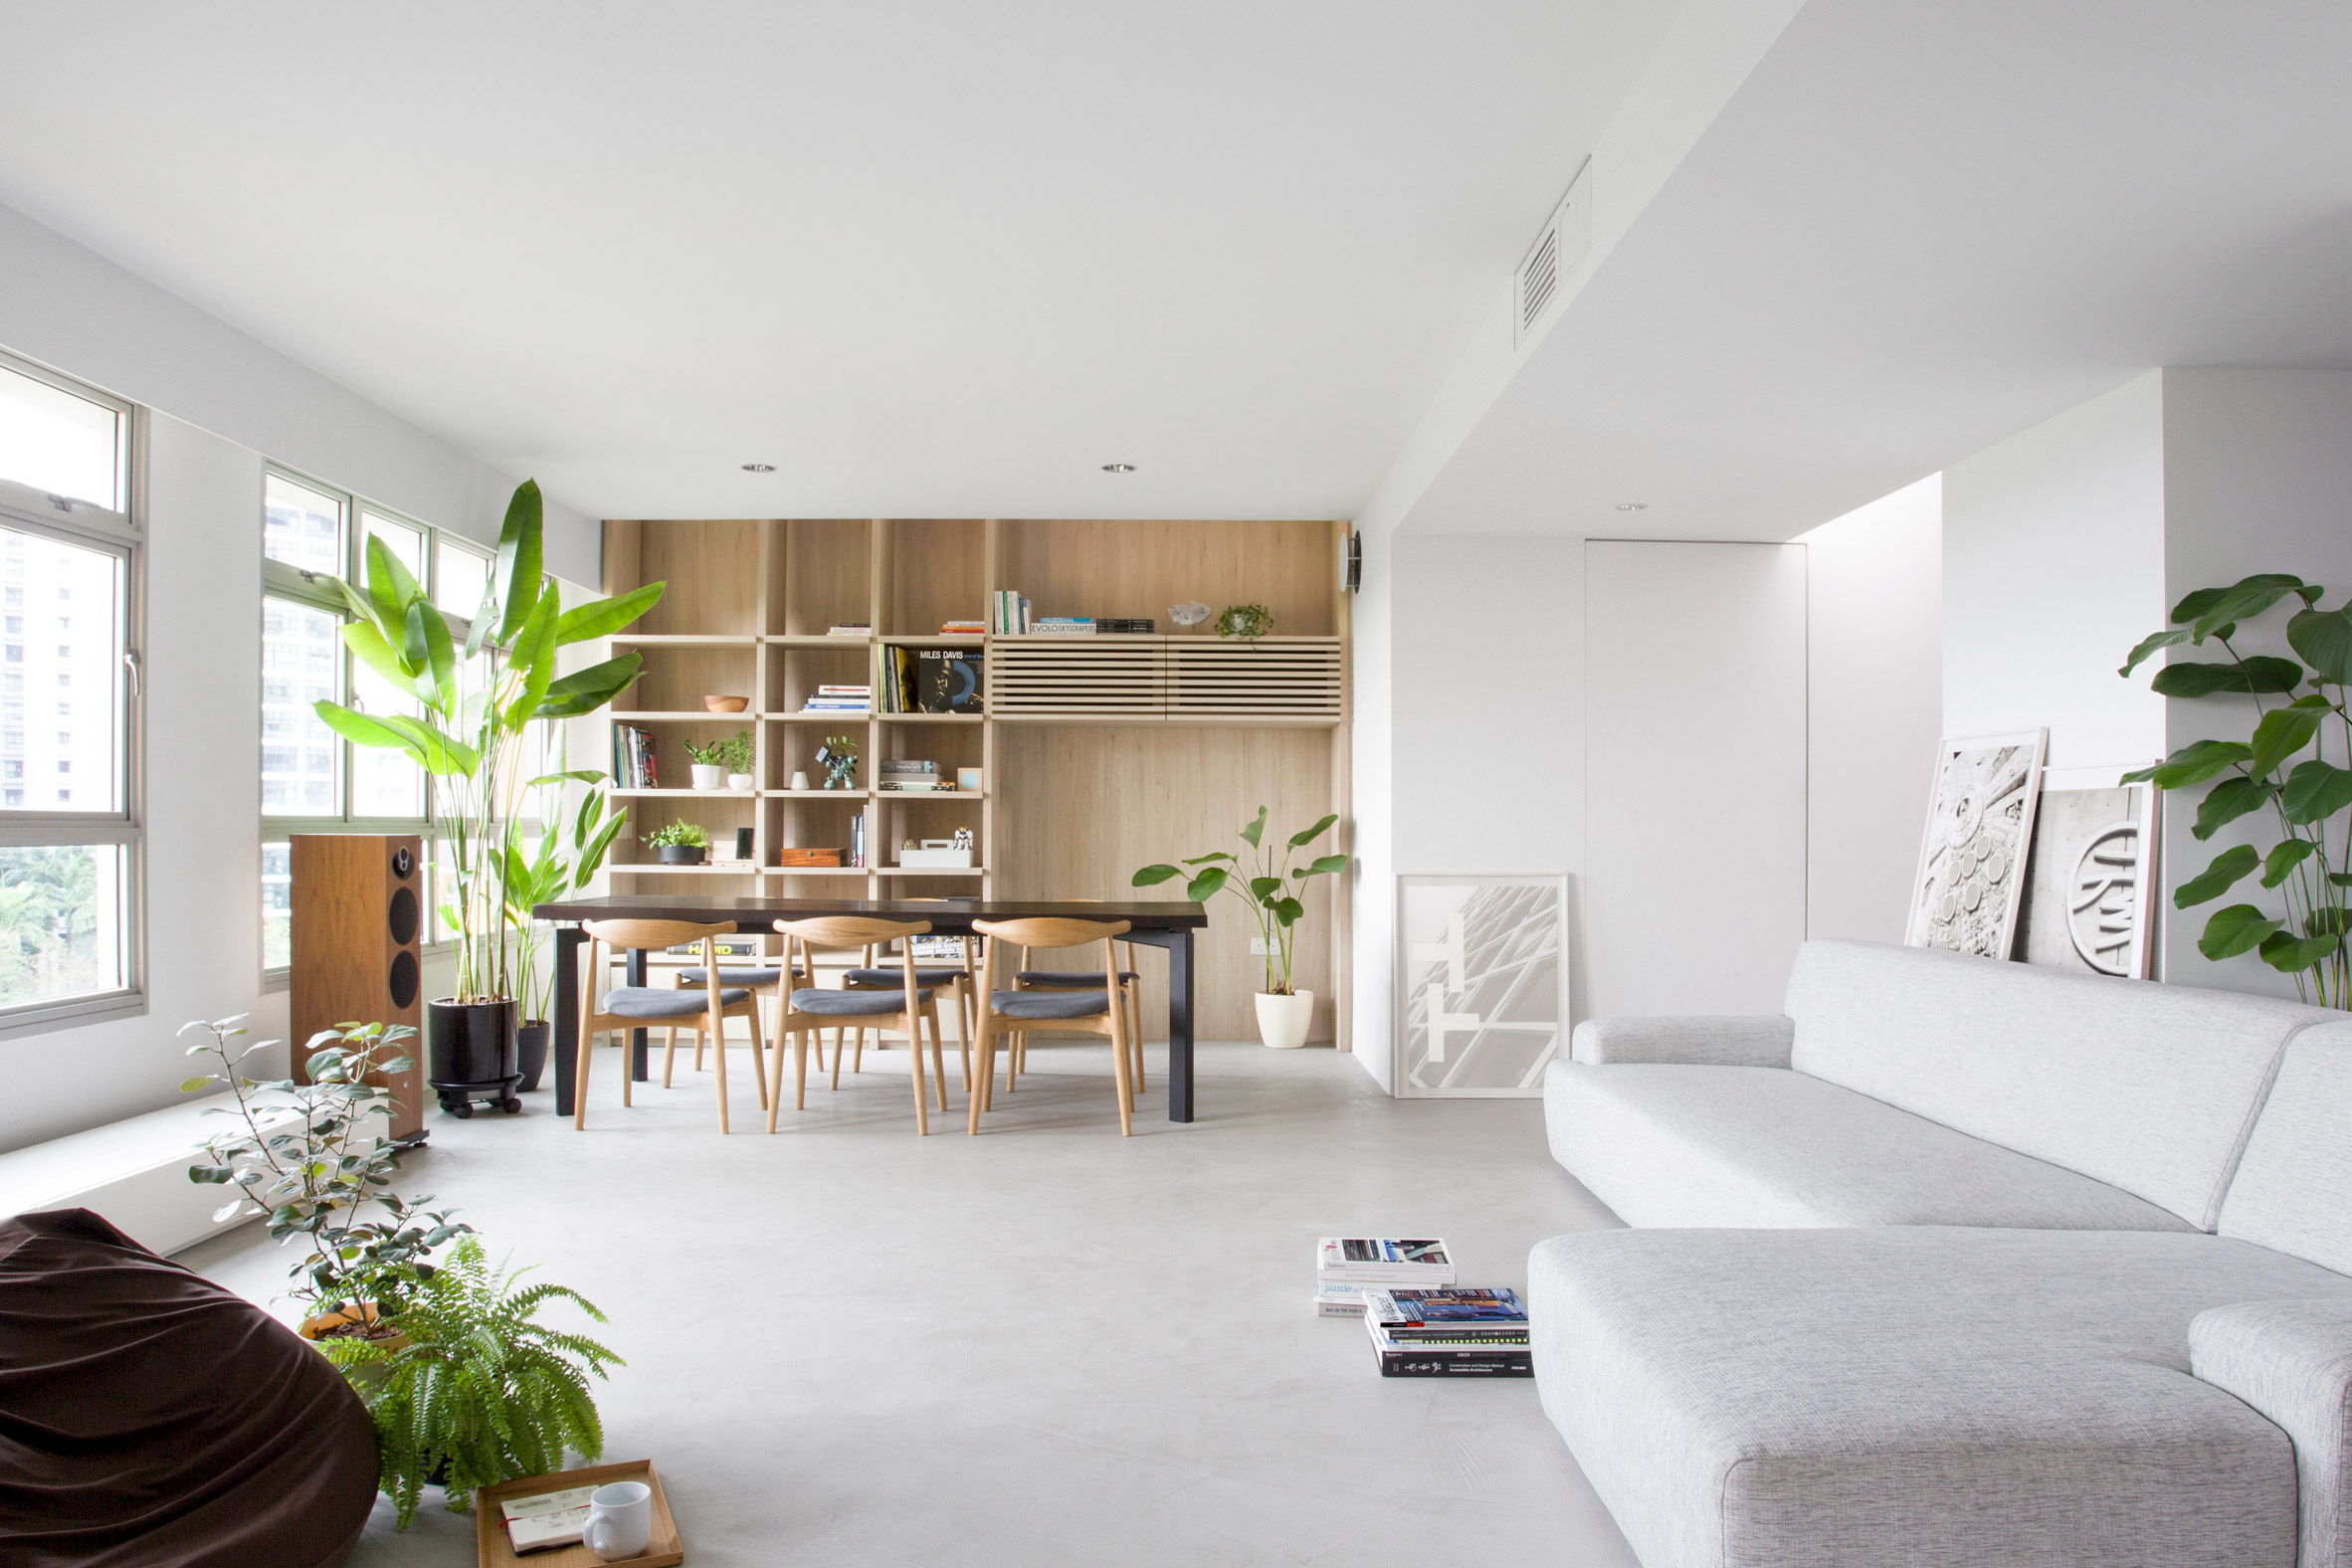 House in a Flat by Nitton Architects